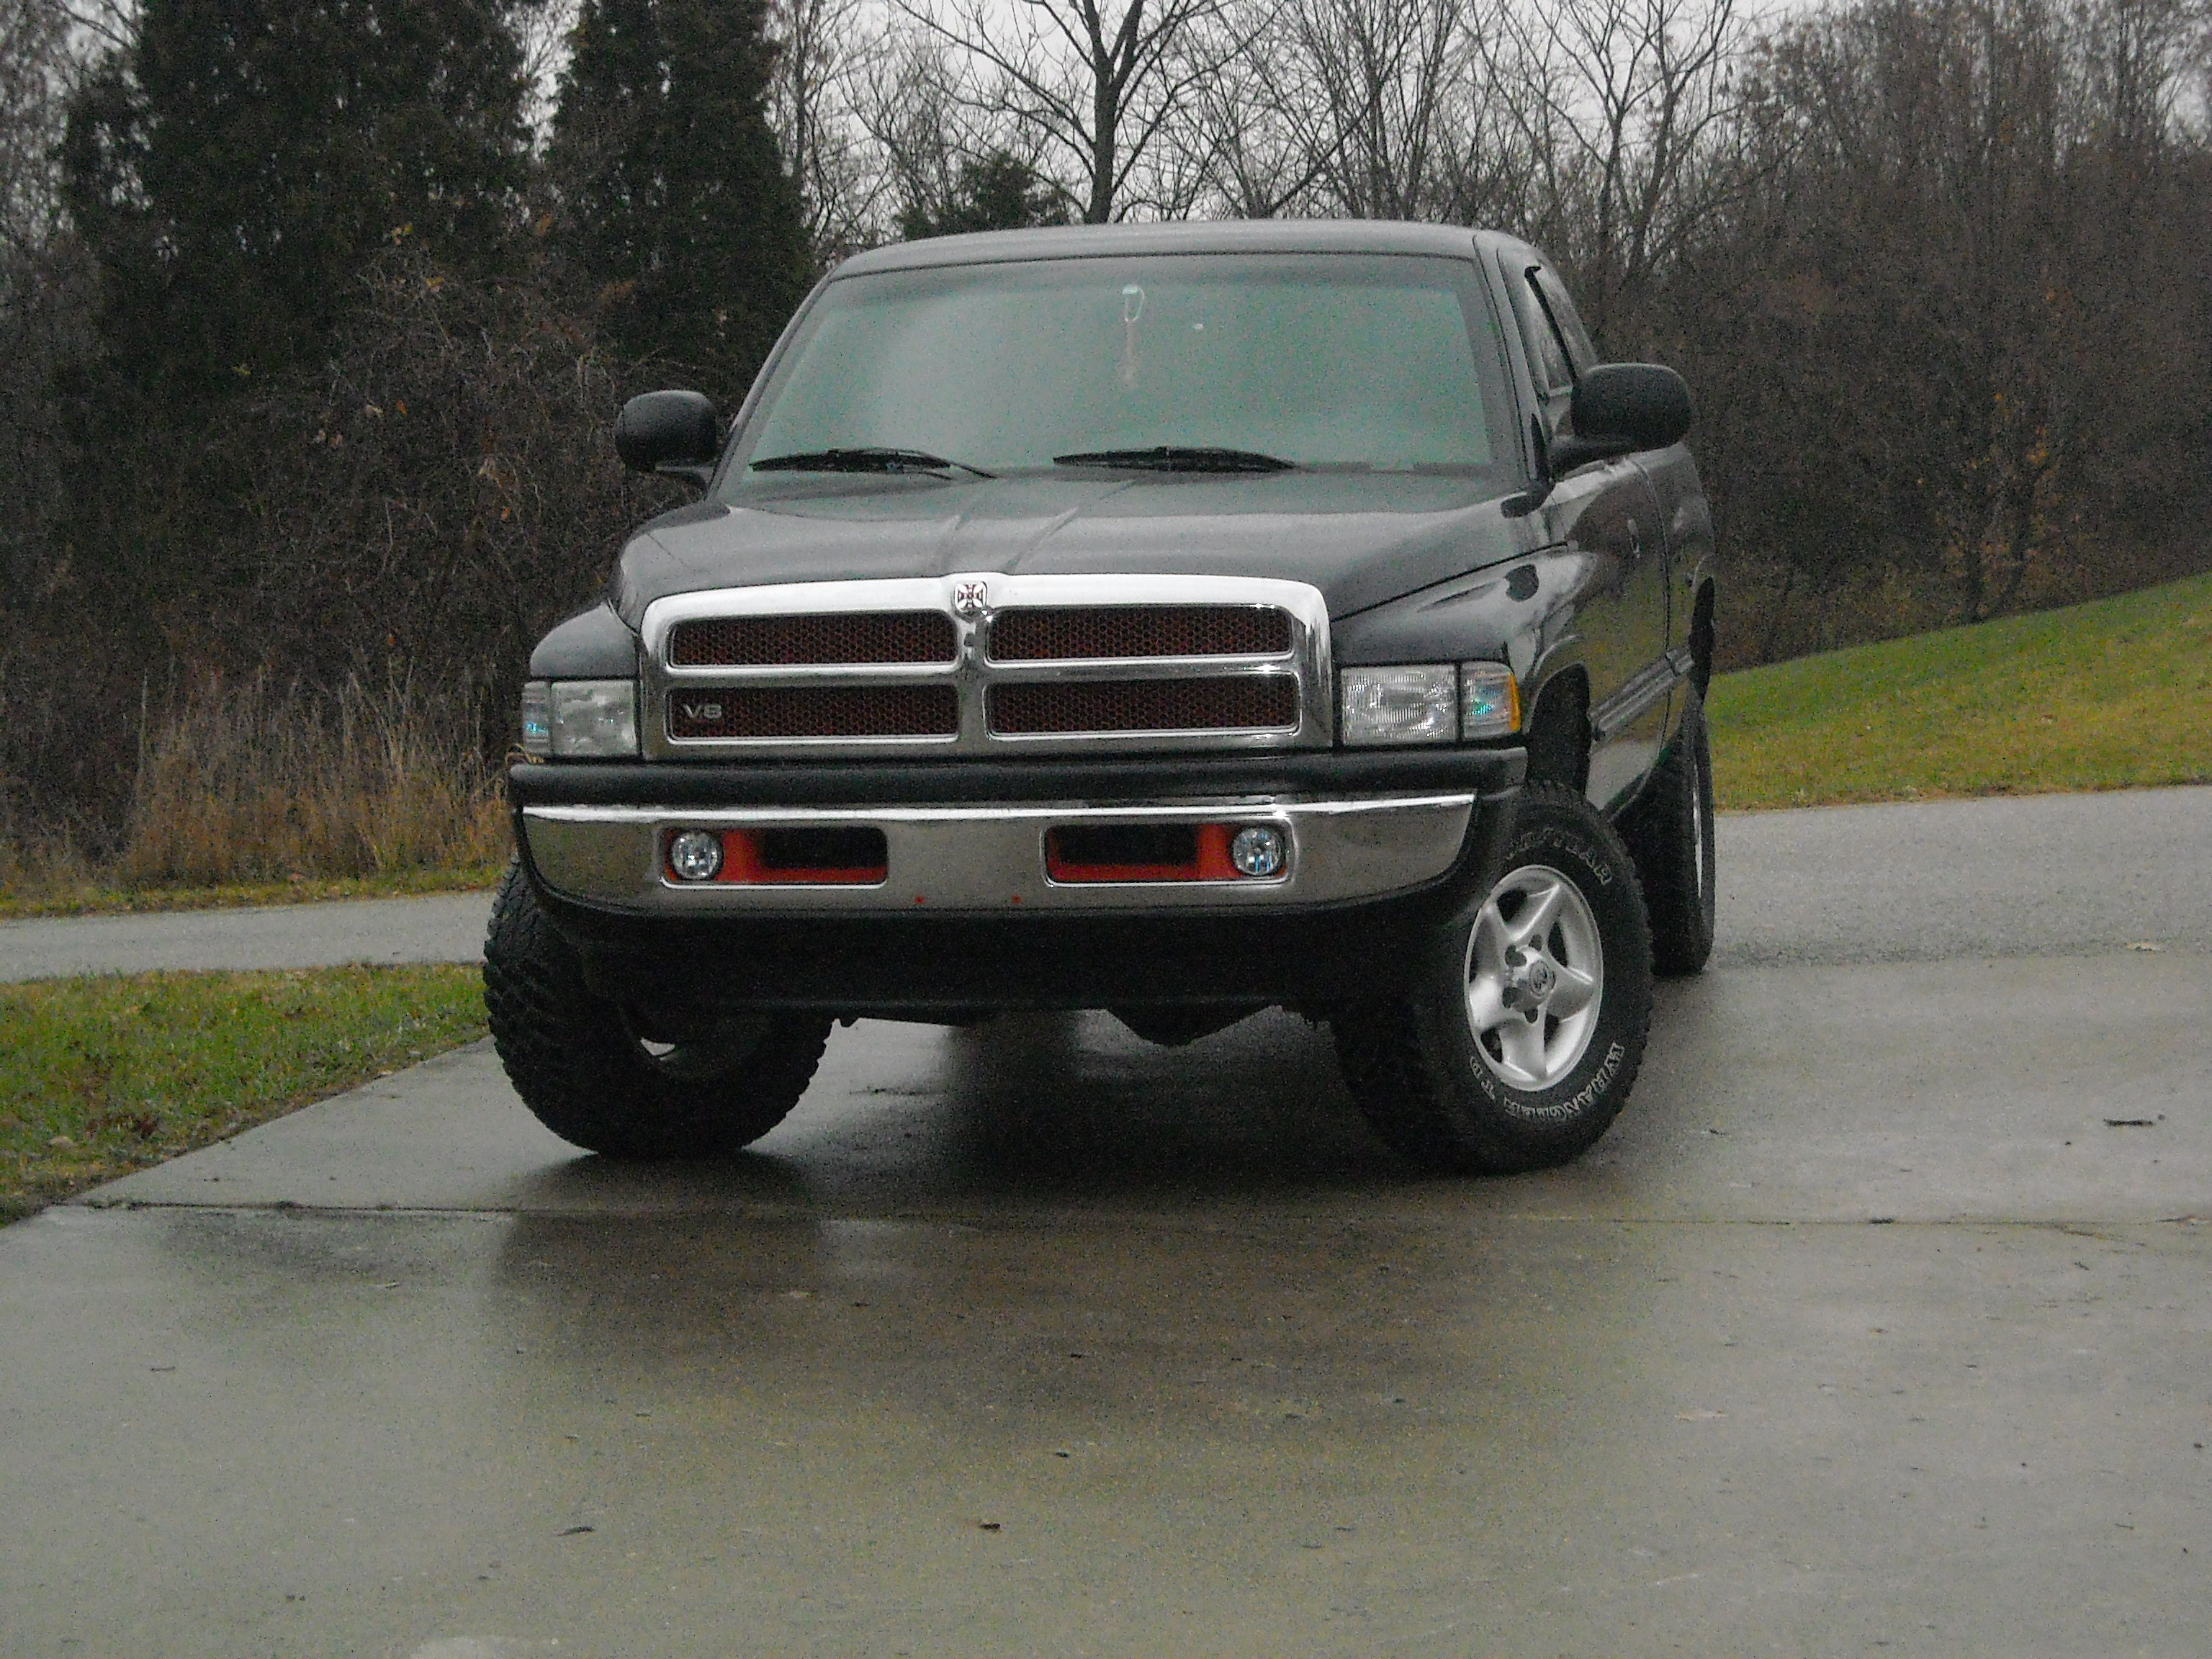 purpldodge 1999 dodge ram 1500 regular cab specs photos modification info at cardomain. Black Bedroom Furniture Sets. Home Design Ideas